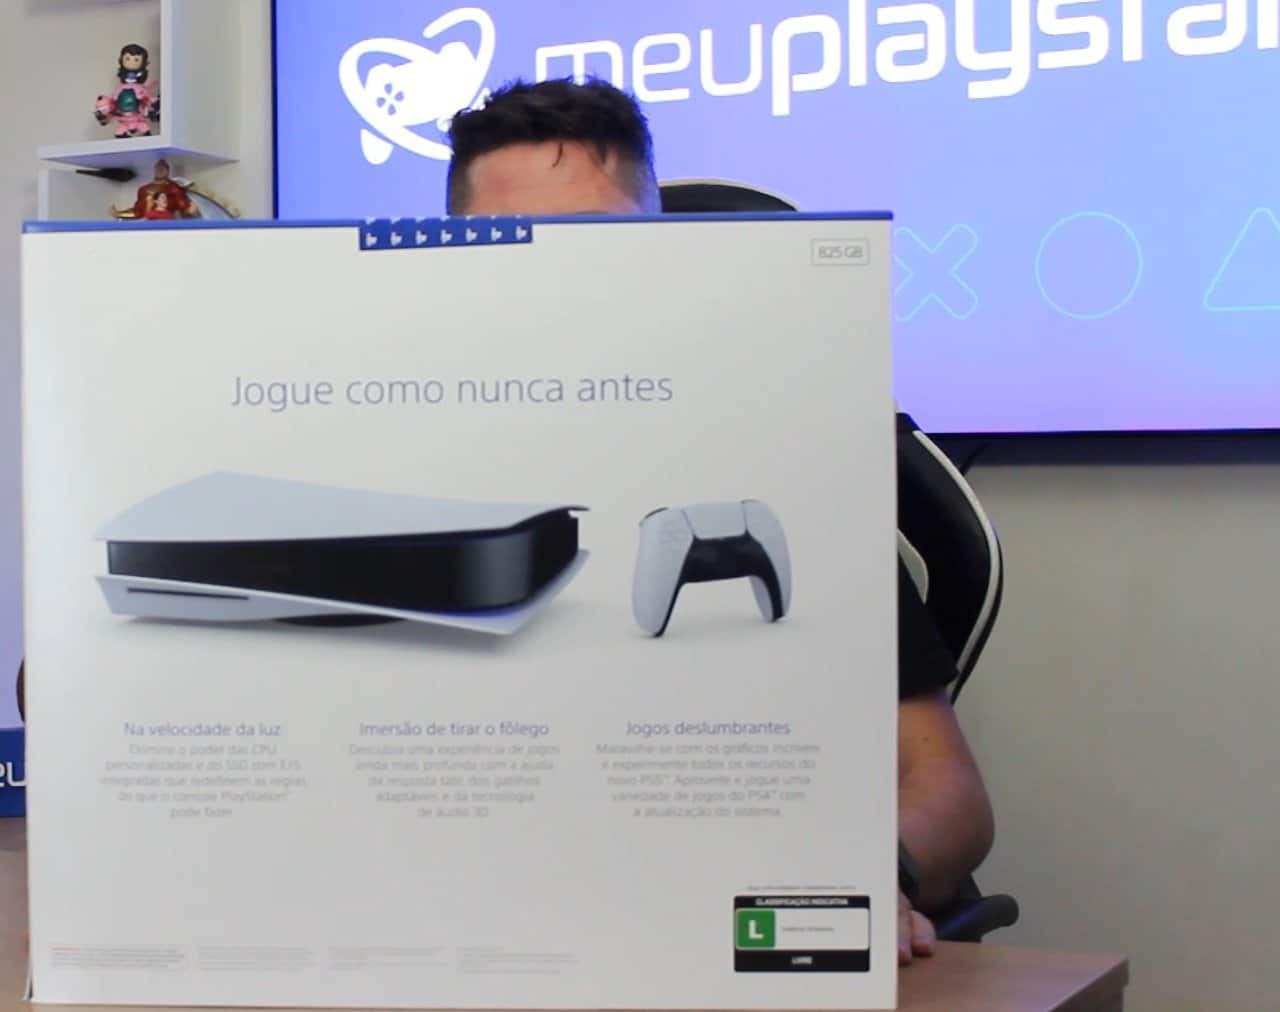 Unboxing do PlayStation 5